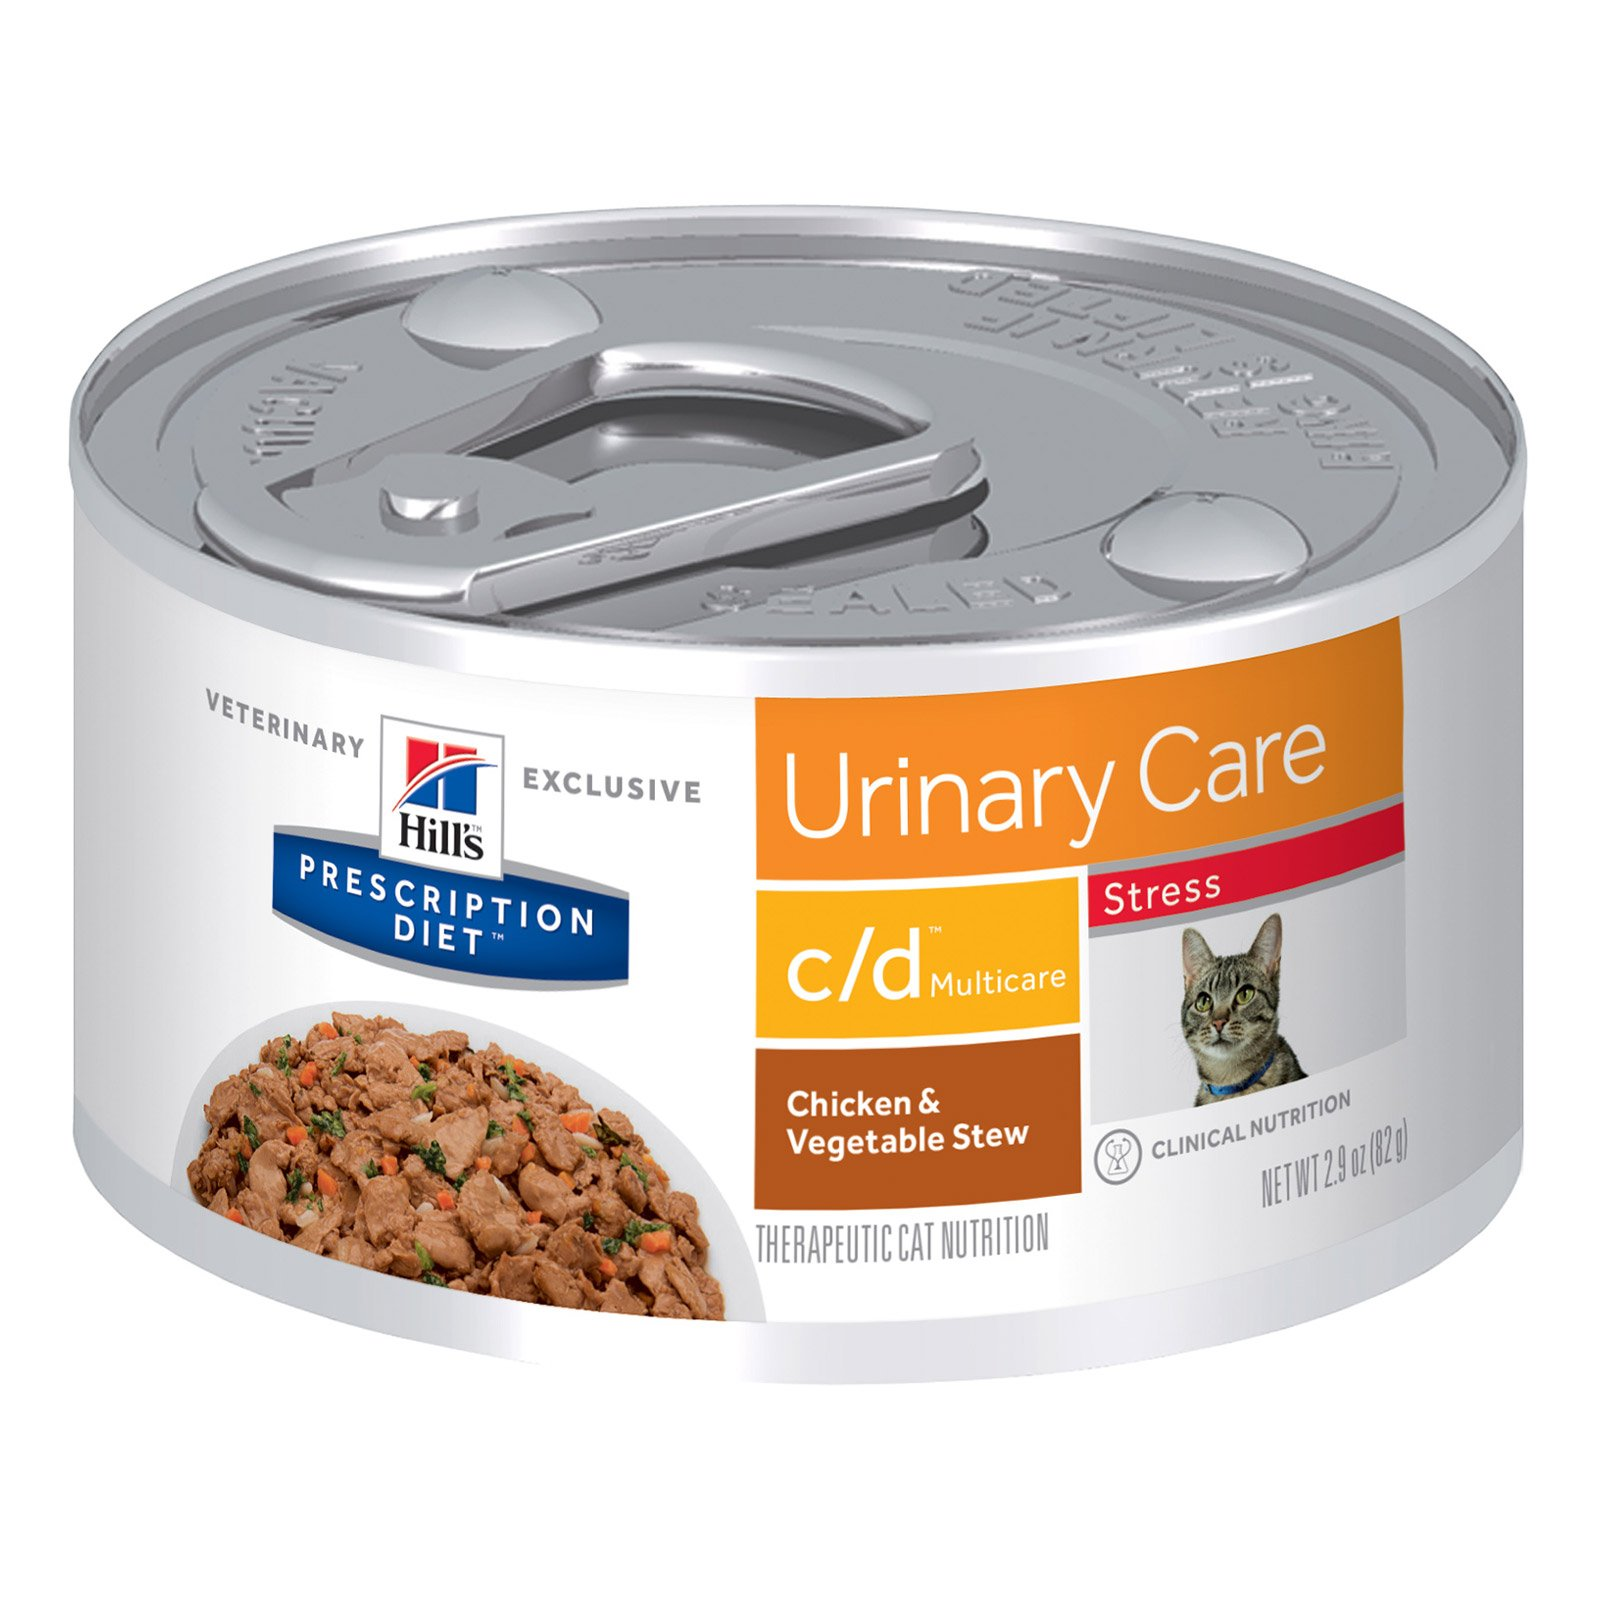 Hill's Prescription Diet c/d Multicare Stress Urinary Care Chicken & Vegetable Stew Canned Cat Food 82 Gm